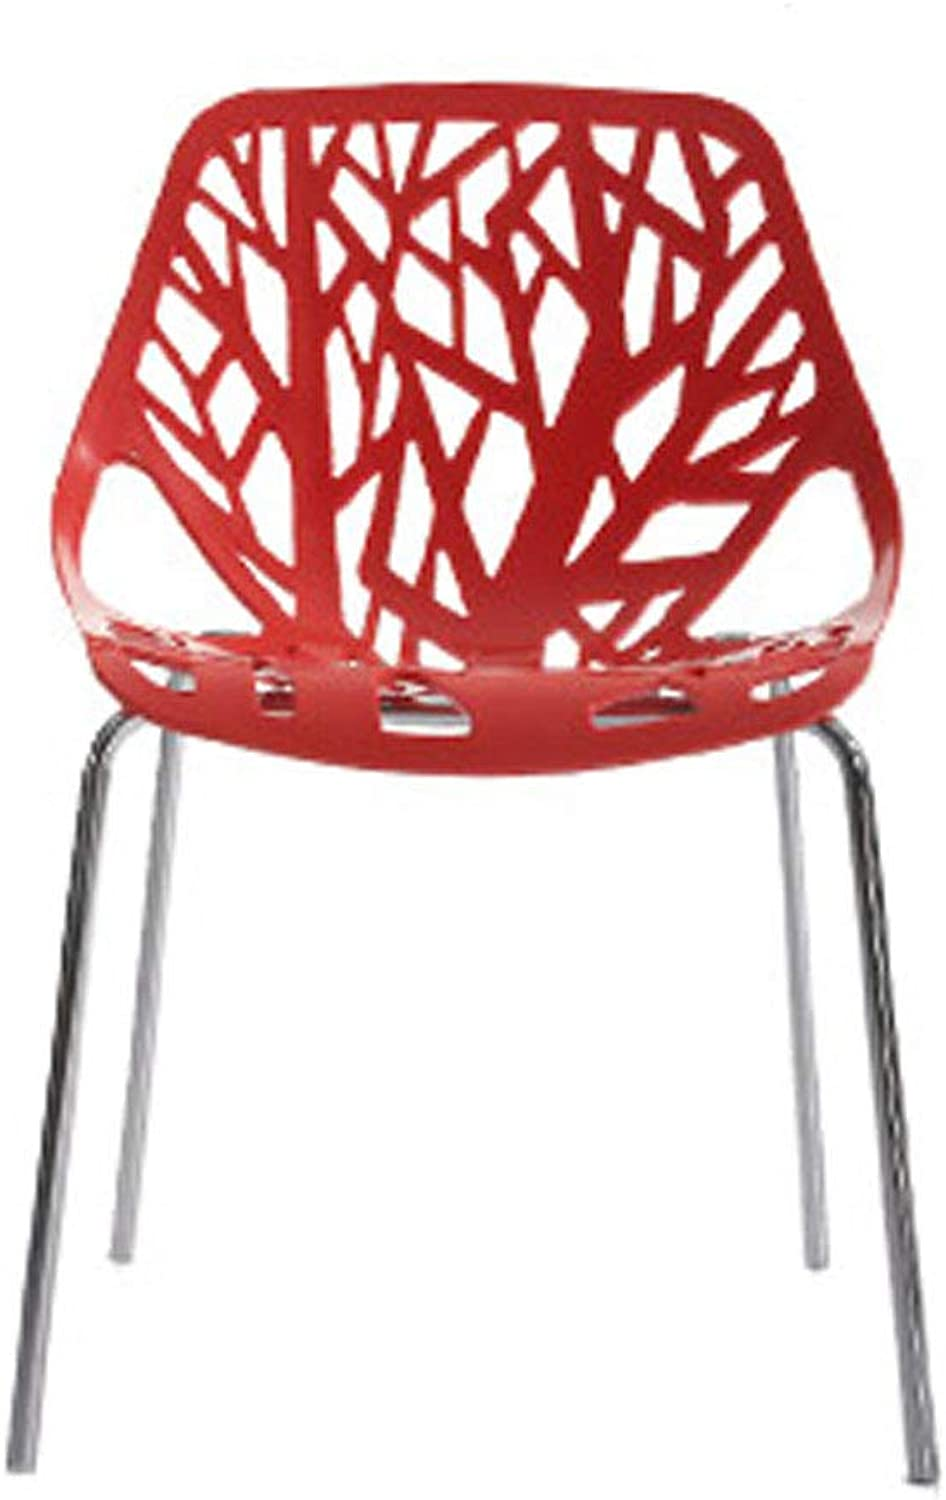 LRZS-Furniture Modern Minimalist Dining Chair European Hotel Dining Room Chair Home Wrought Iron Plastic Dining Chair Back Chair (color   RED)